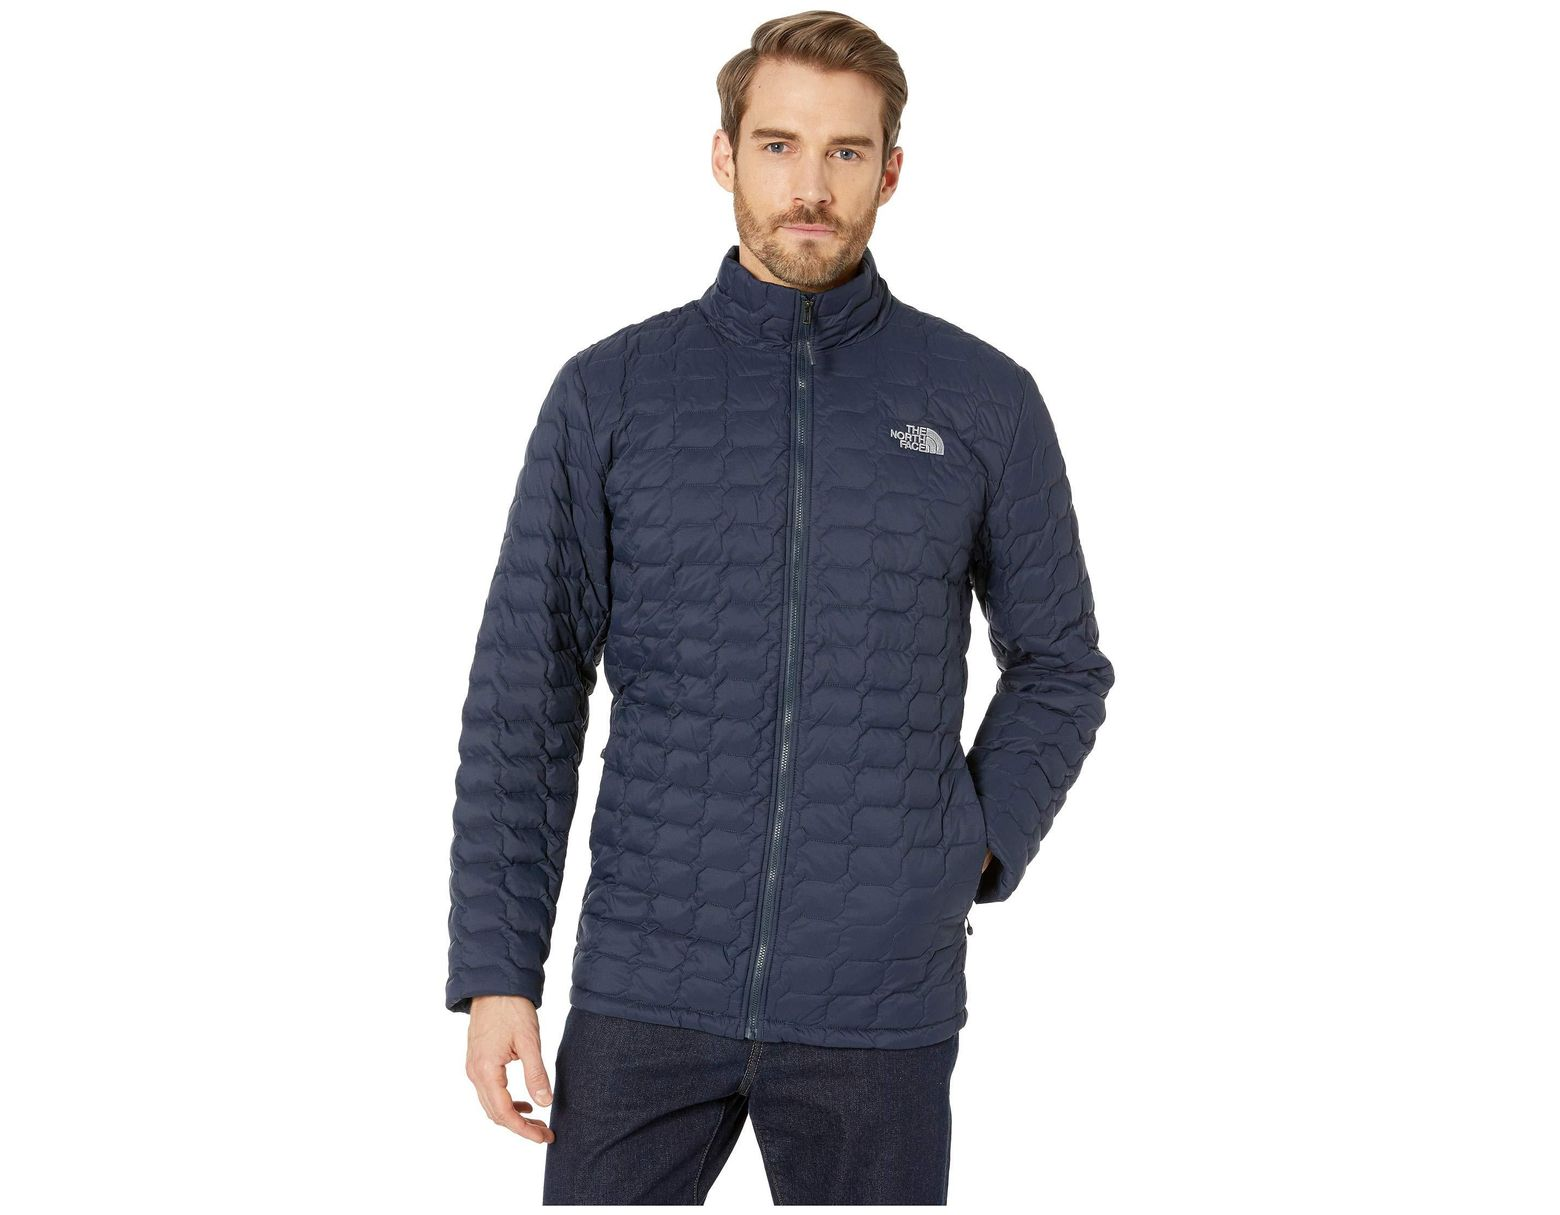 f2e1248fc Men's Blue Thermoball Jacket - Tall